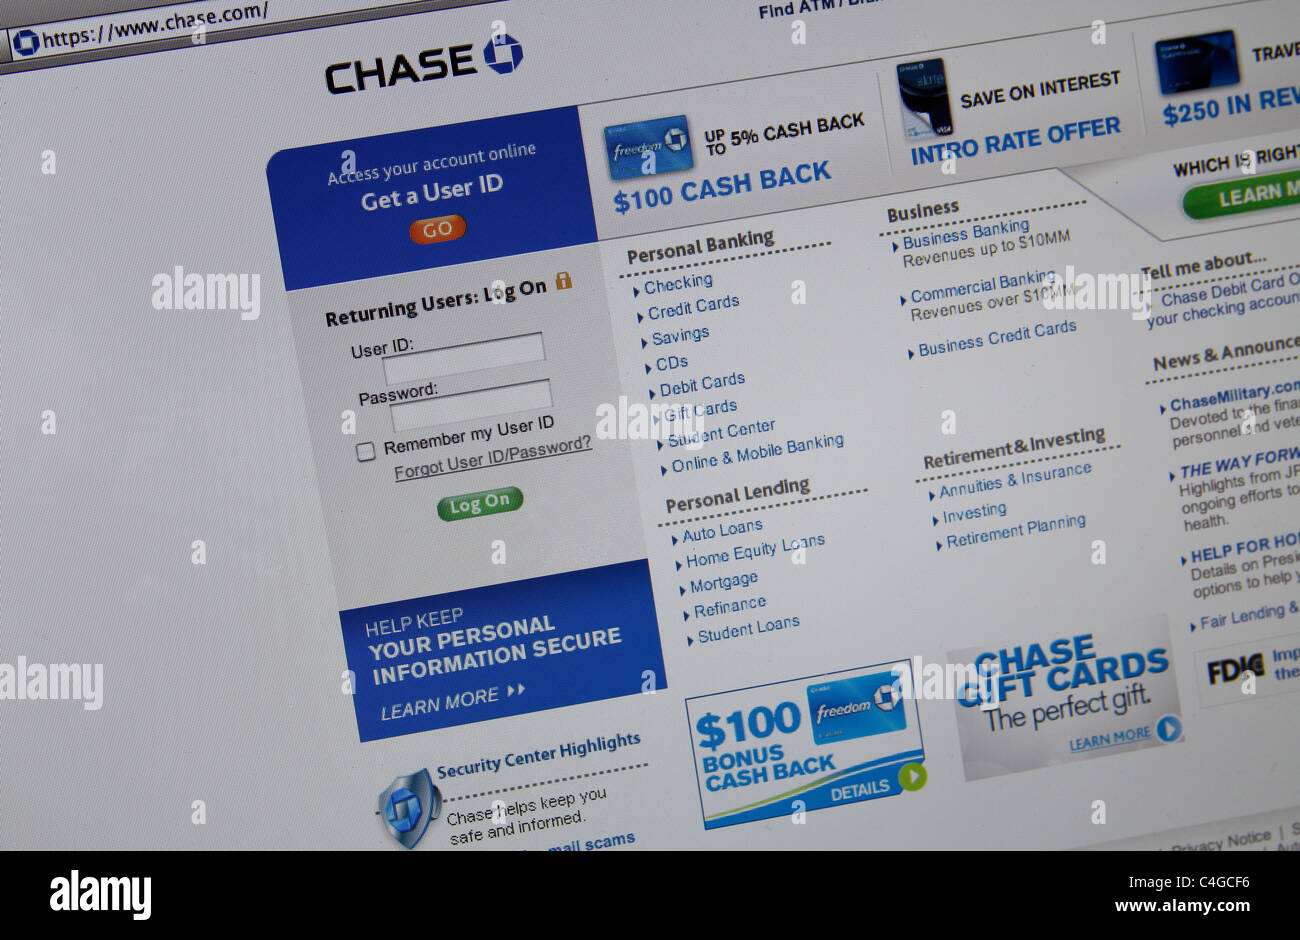 Chase Bank Card Stock Photos & Chase Bank Card Stock Images - Alamy